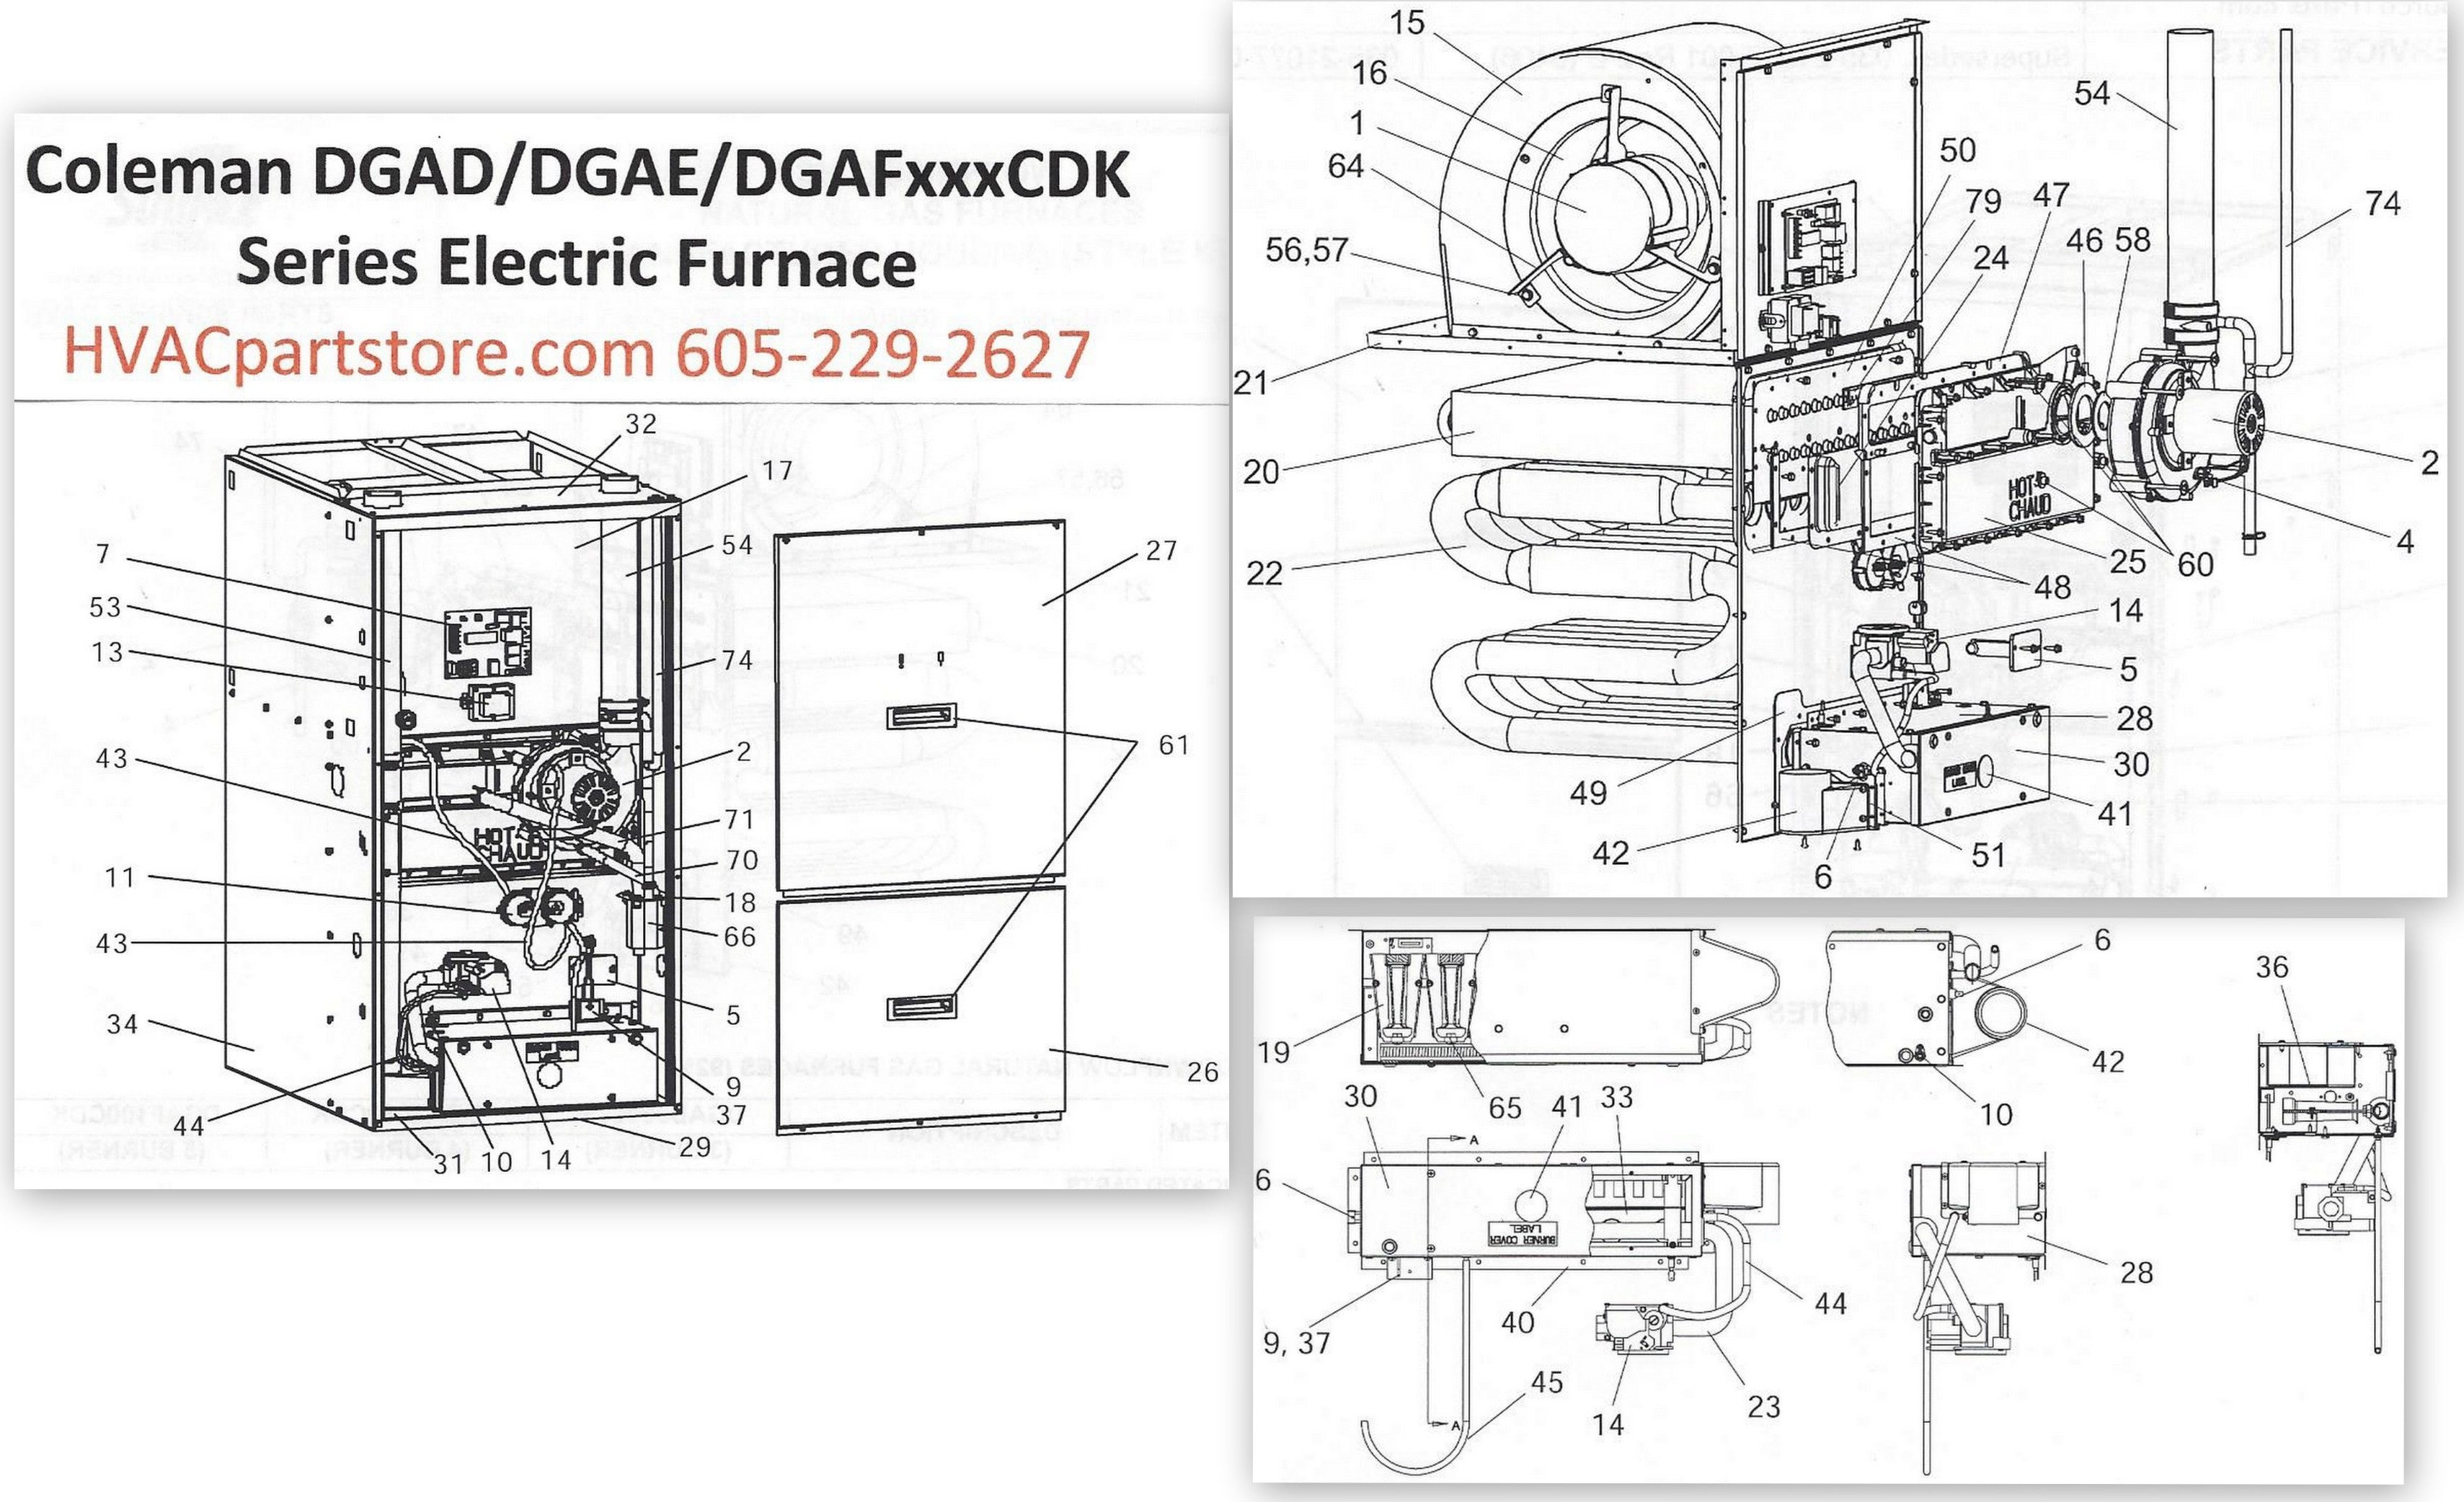 coleman furnace wiring diagram model dfaa084bbta coleman furnace wiring diagram 3614 w000 dgad060cdk coleman gas furnace parts – tagged